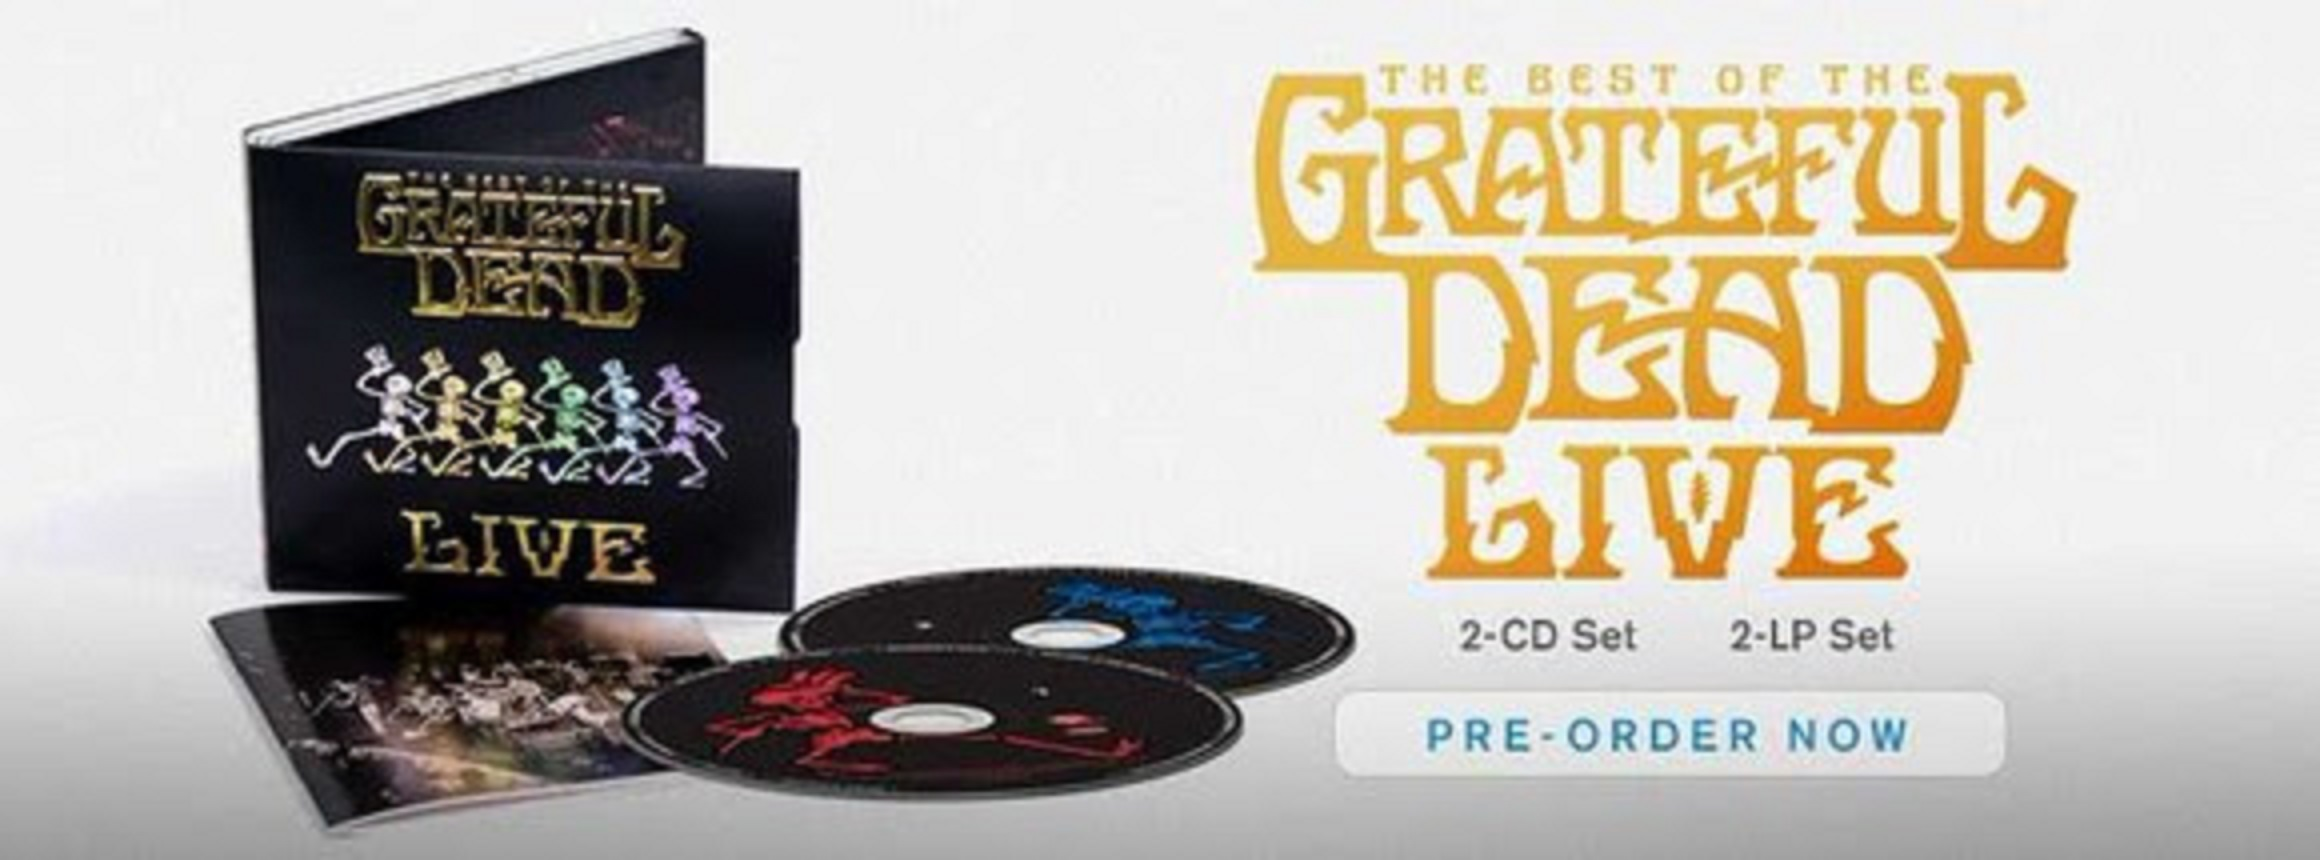 Announcing The Best Of The Grateful Dead Live